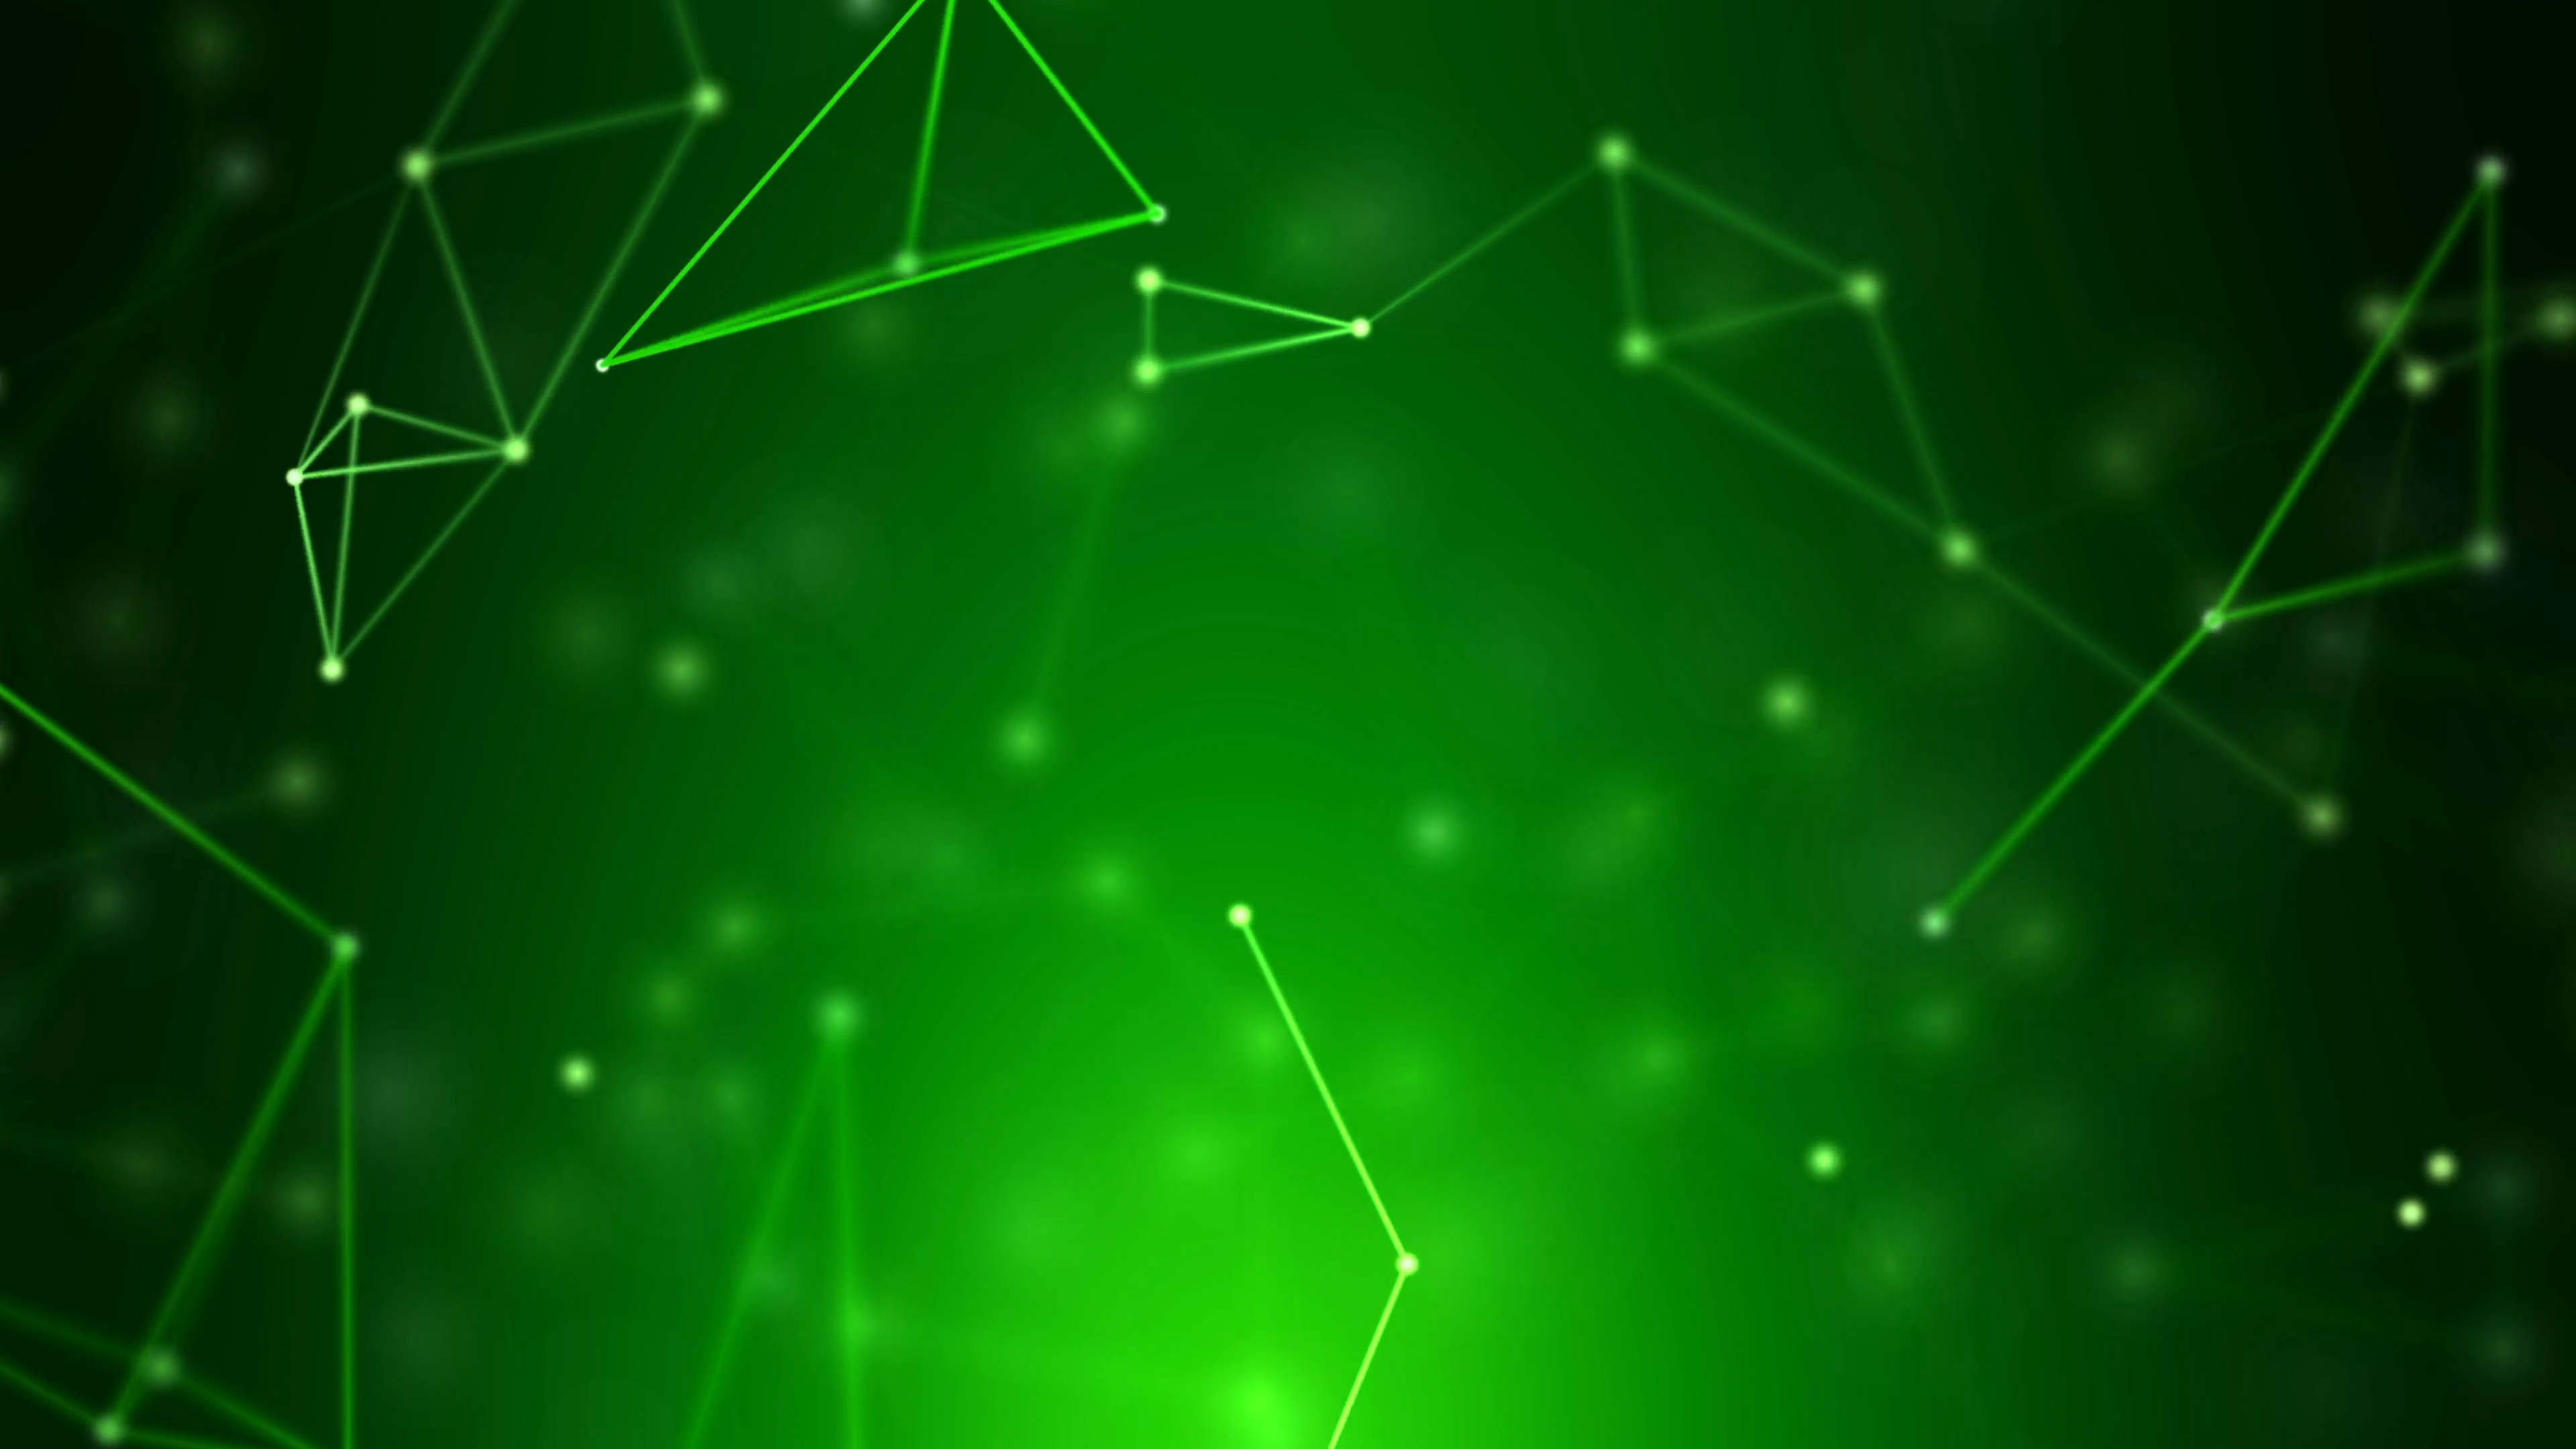 Green Wallpaper HD in 4K with Abstract Geometric Fractal Lines